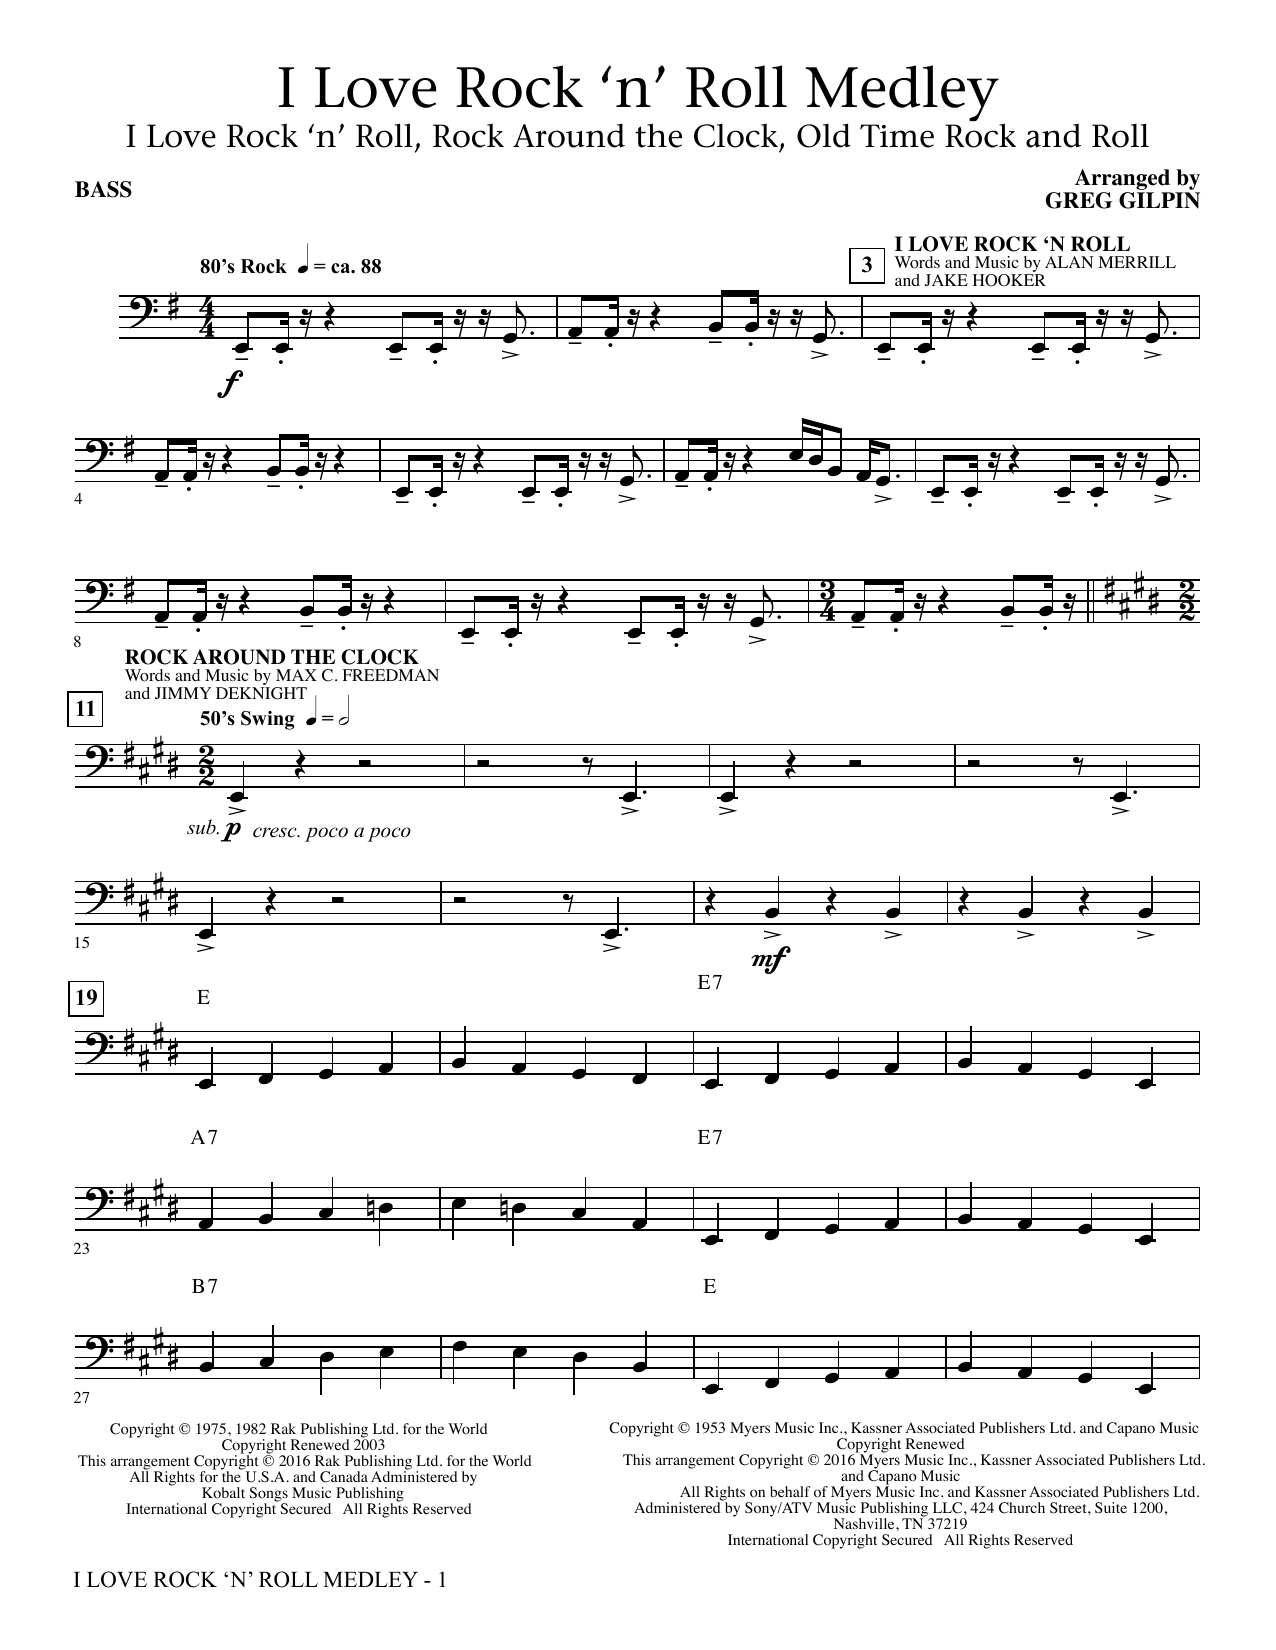 i love rock and roll sheet music pdf